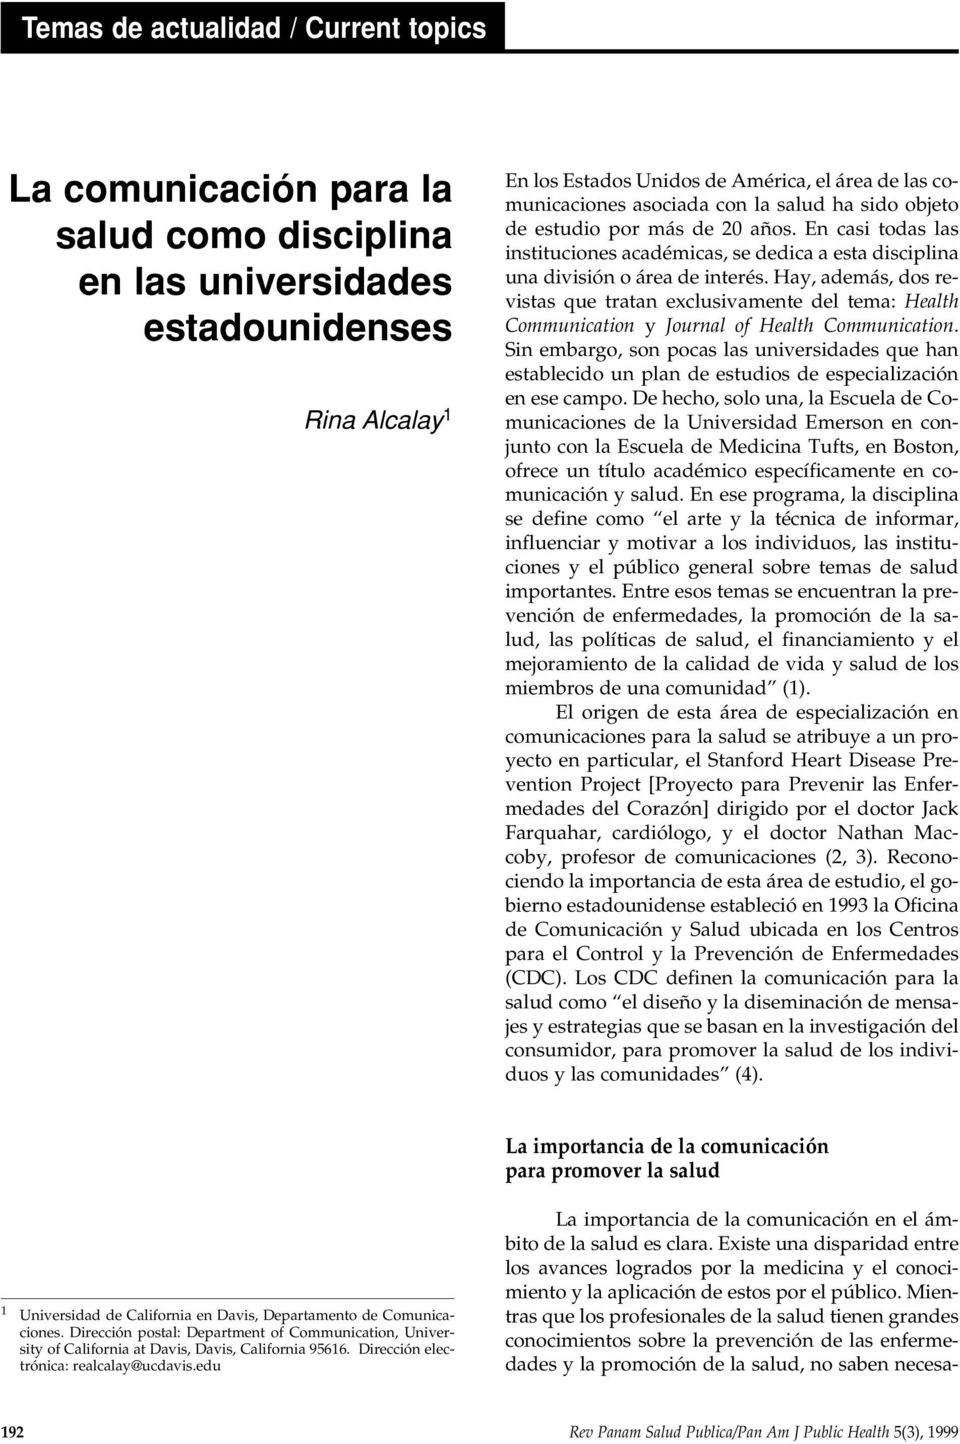 Hay, además, dos revistas que tratan exclusivamente del tema: Health Communication y Journal of Health Communication.